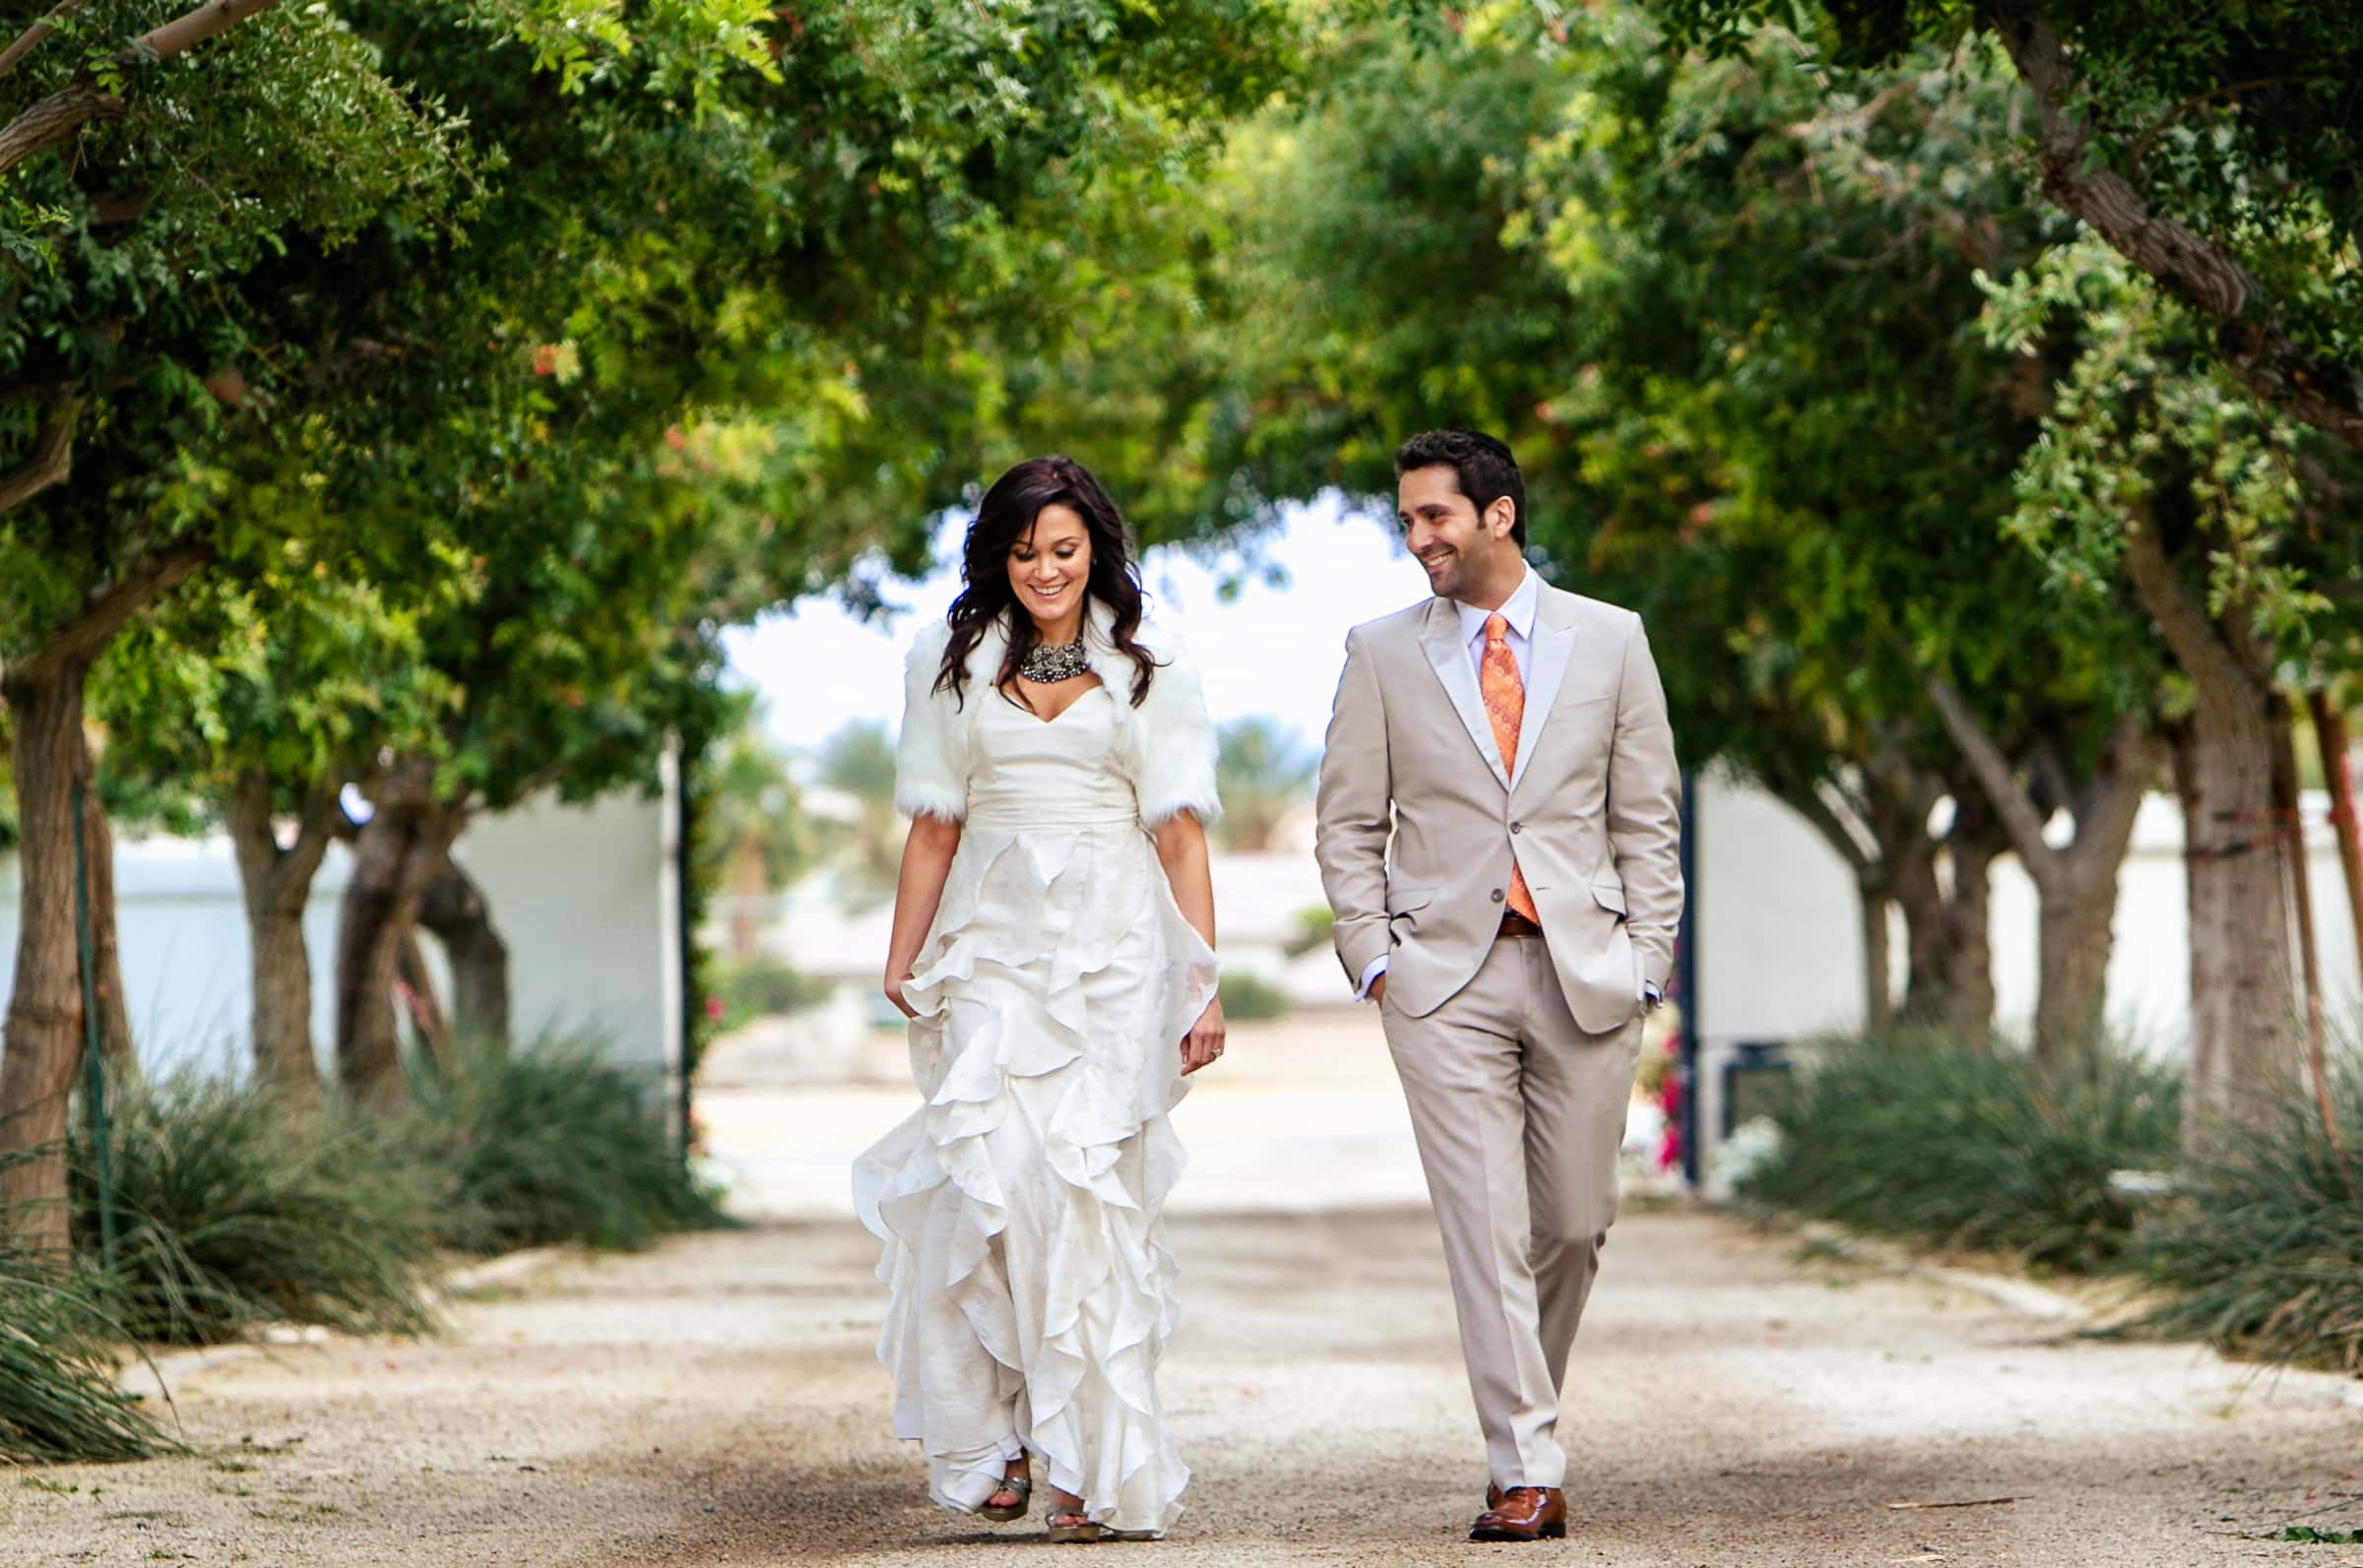 Jay Karas and Monica Osborn walking together at their Palm Springs Wedding in California at The Bougainvillea Estate